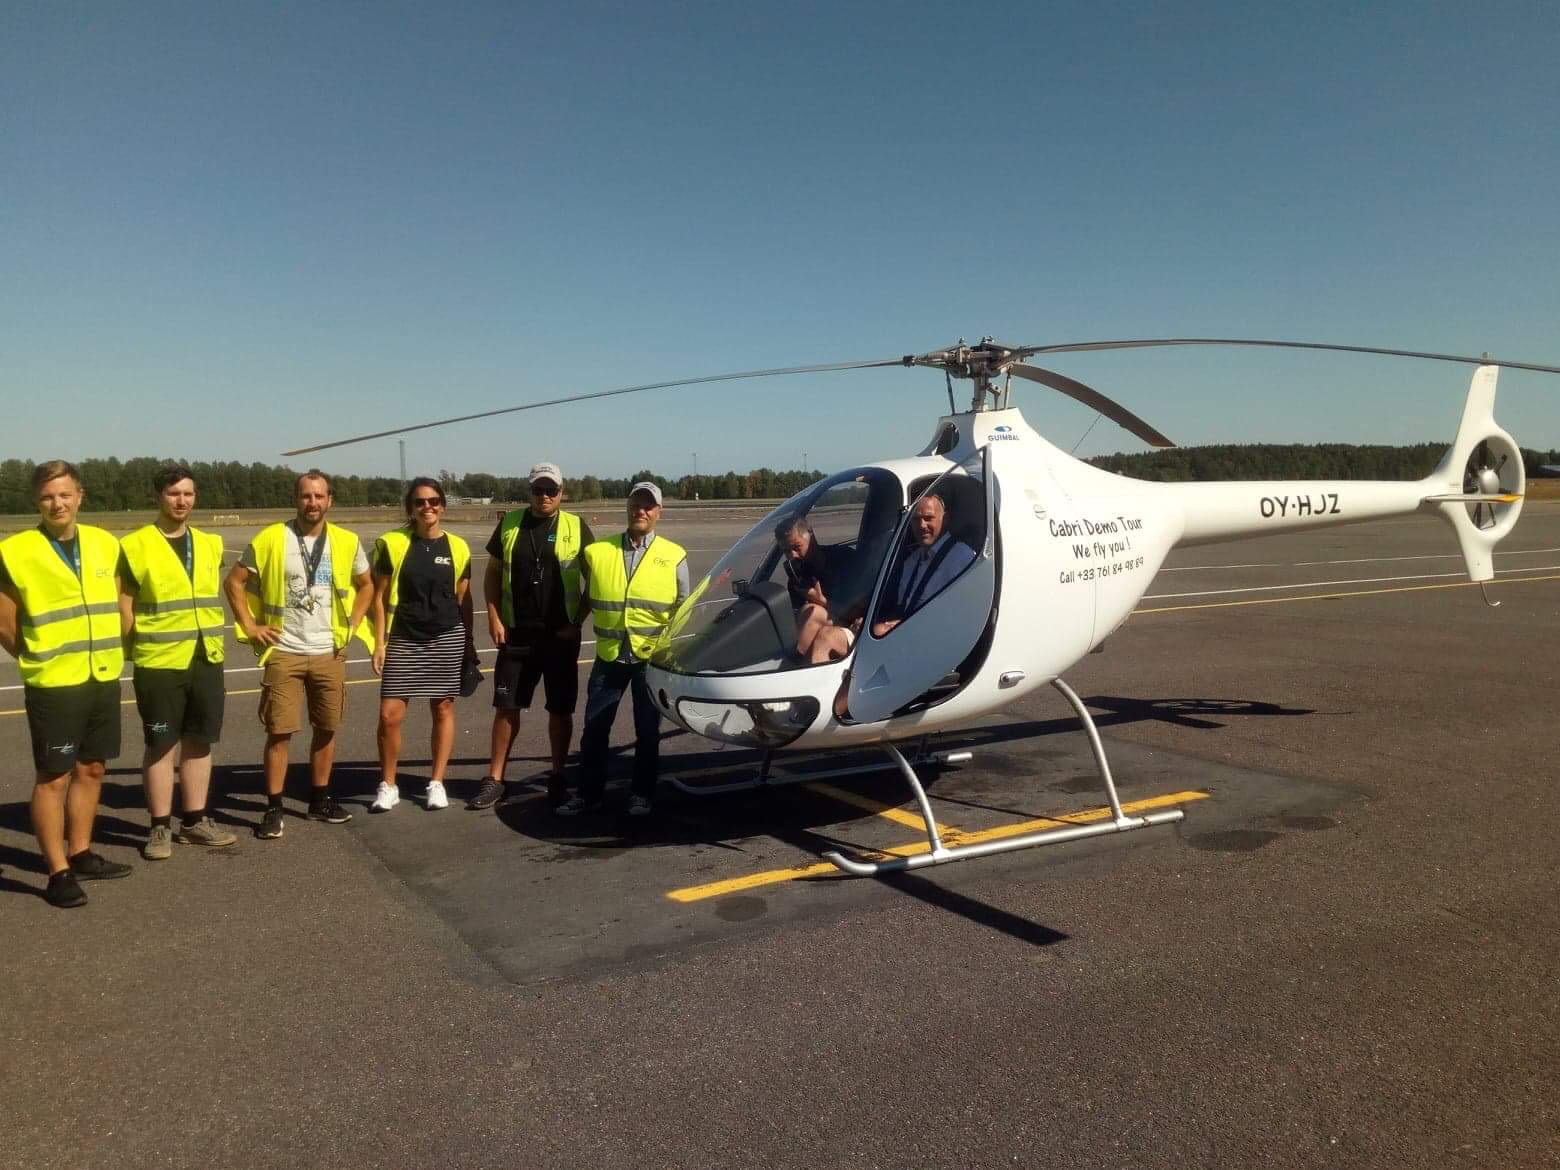 A warm welcome to our friends from Guimbal Helicopters